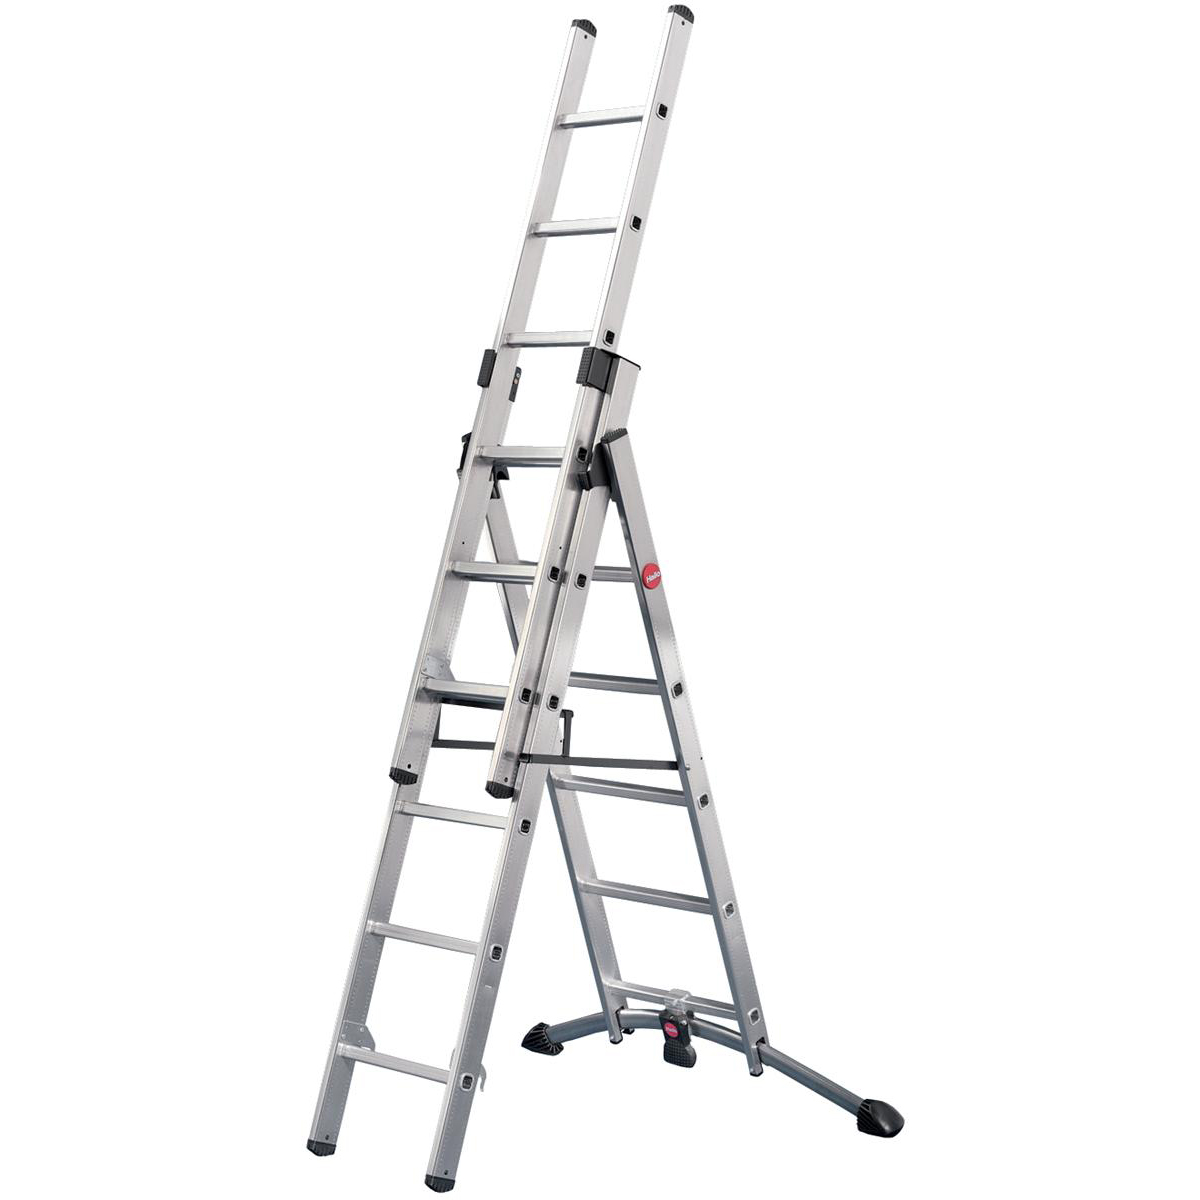 Image for Combi Ladder 3 Section Capacity 150kg Rungs 2x6 and 1x5 for H4.8m 15.5kg Aluminium